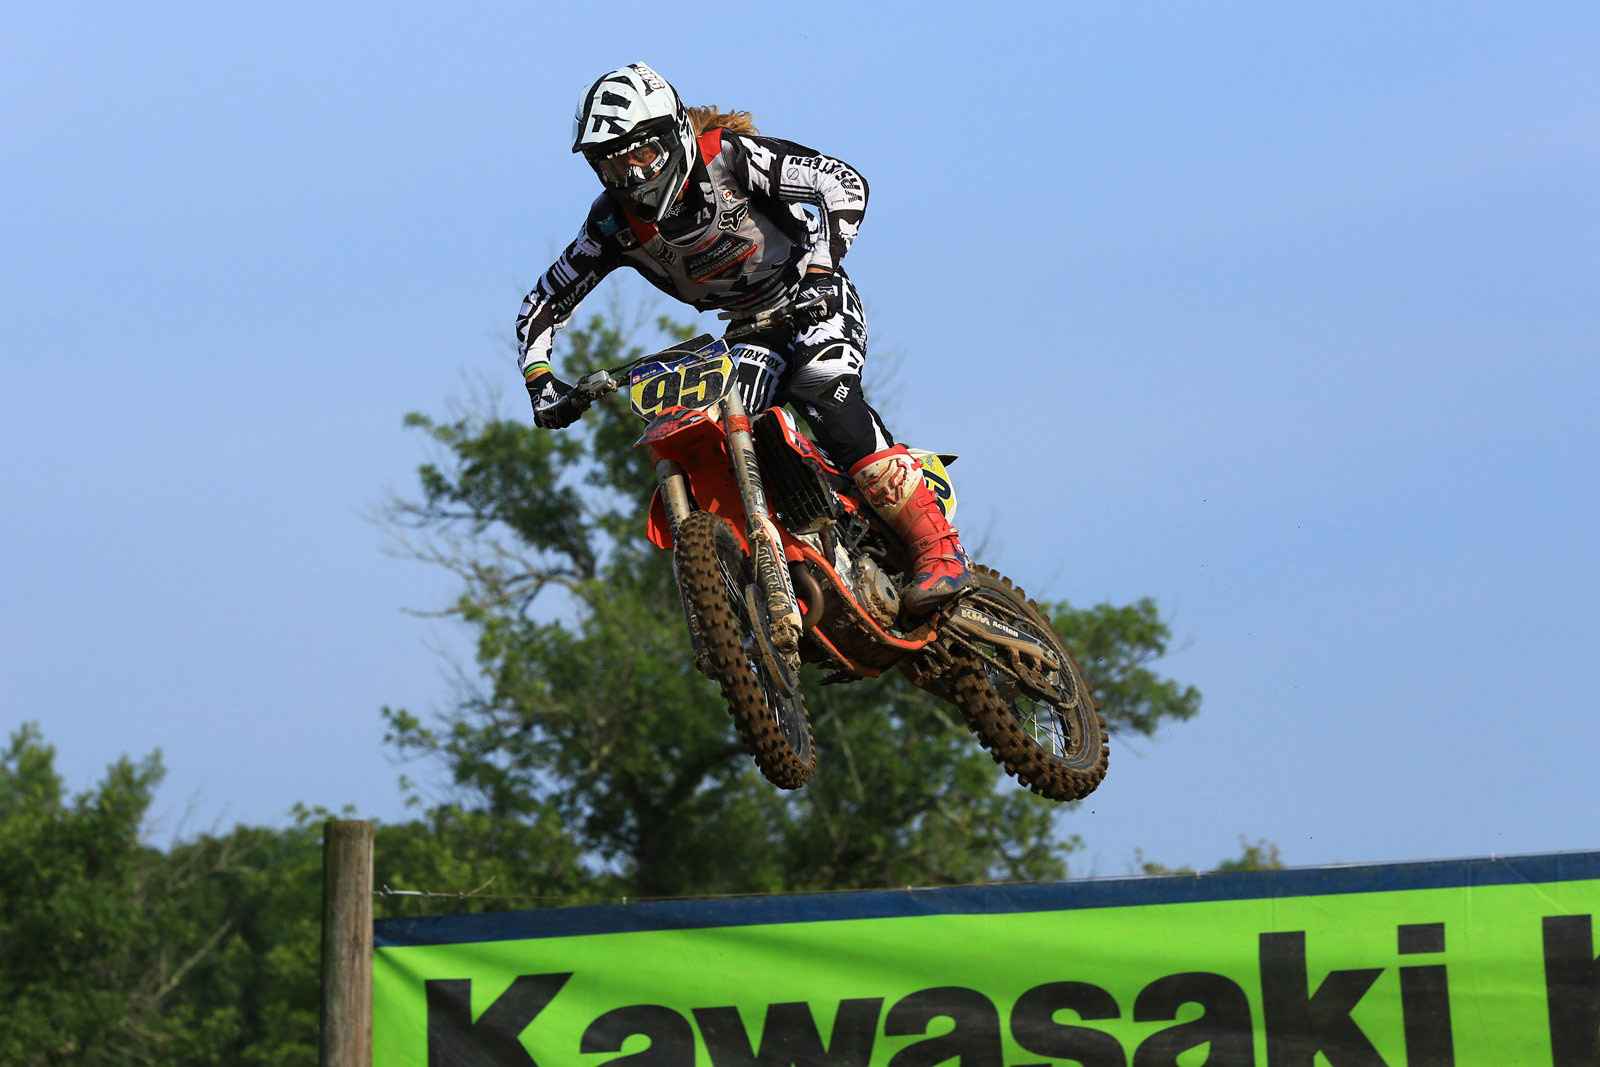 Masterpool - Day 1: 2015 Rocky Mountain ATV/MC AMA Amateur National Motocross Championships  - Motocross Pictures - Vital MX